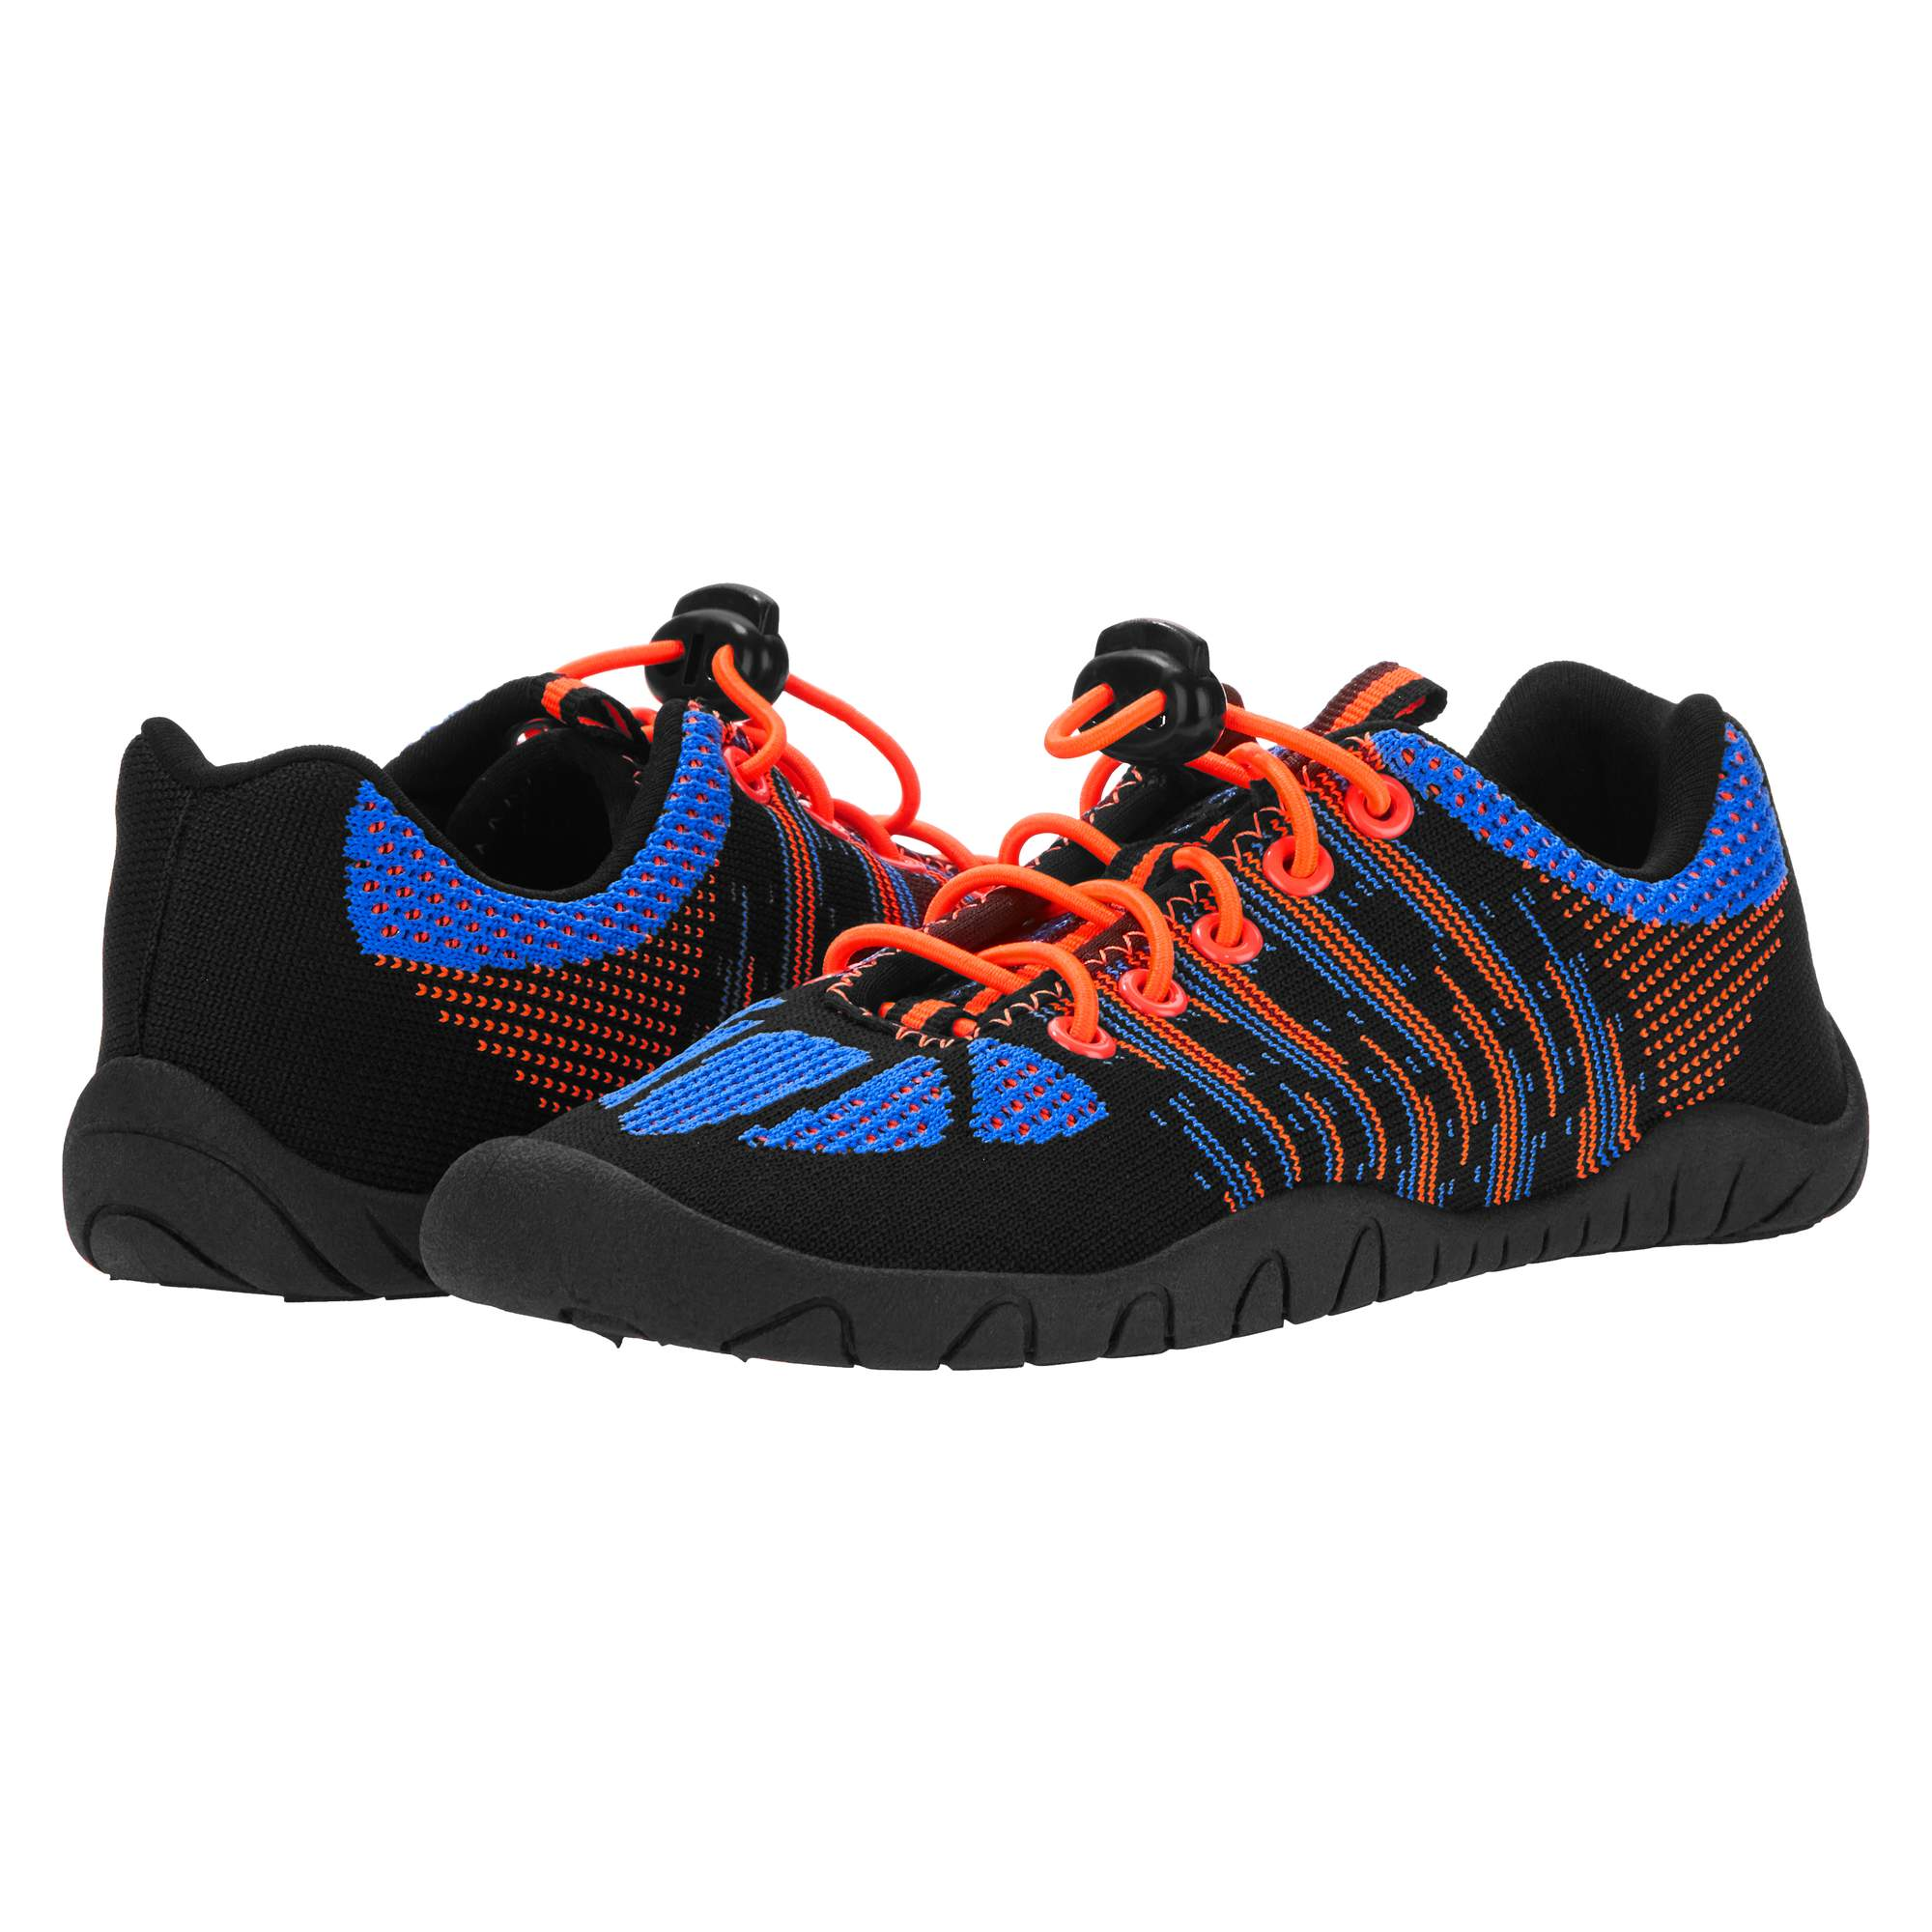 5d68f3eda5744 sweden nike air foamposite pro metallic gold 657f3 dcc4d  promo code for kids  nike kyrie 2 black blue glow anthracite b9a68 8be9f